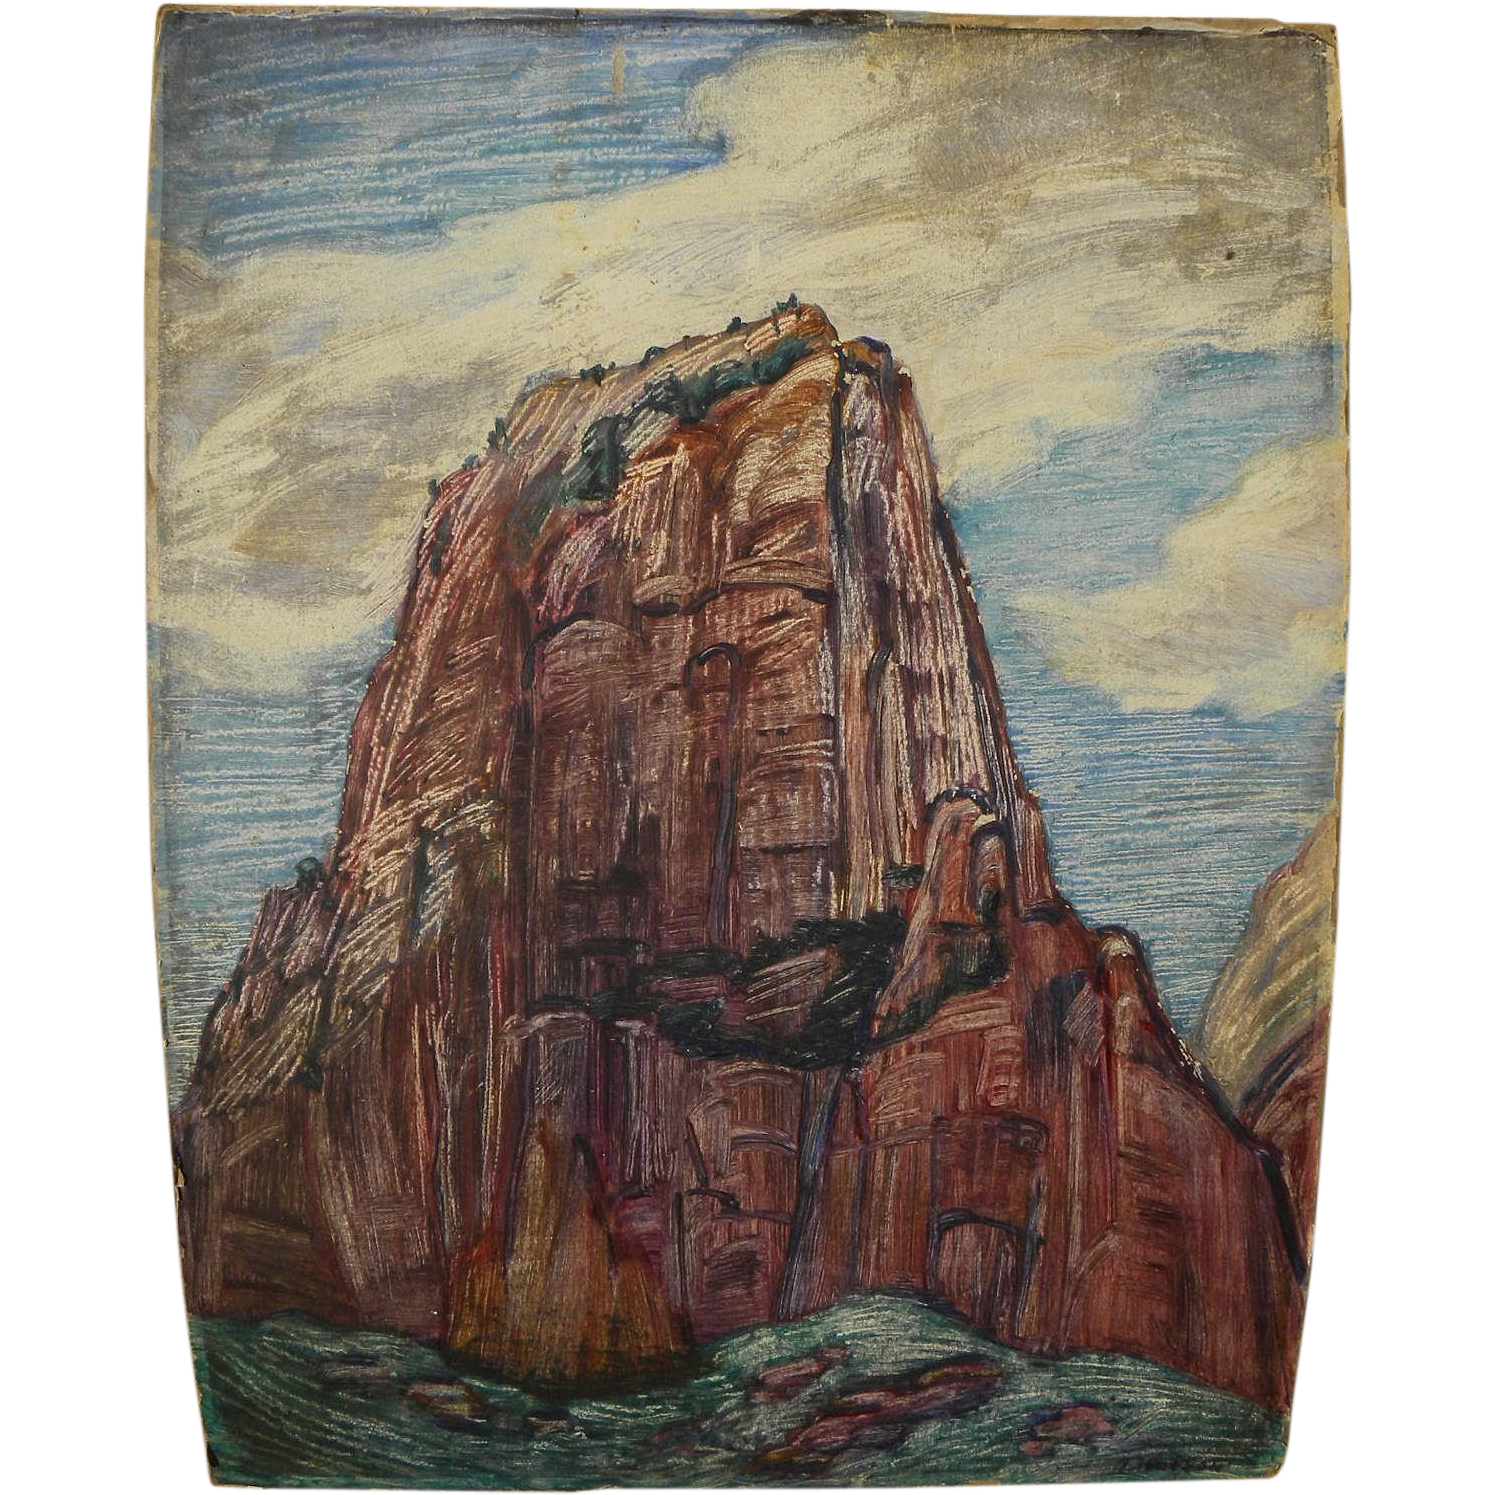 ADELE WATSON (1873-1947) painting of Zion National Park Utah by noted California modernist artist